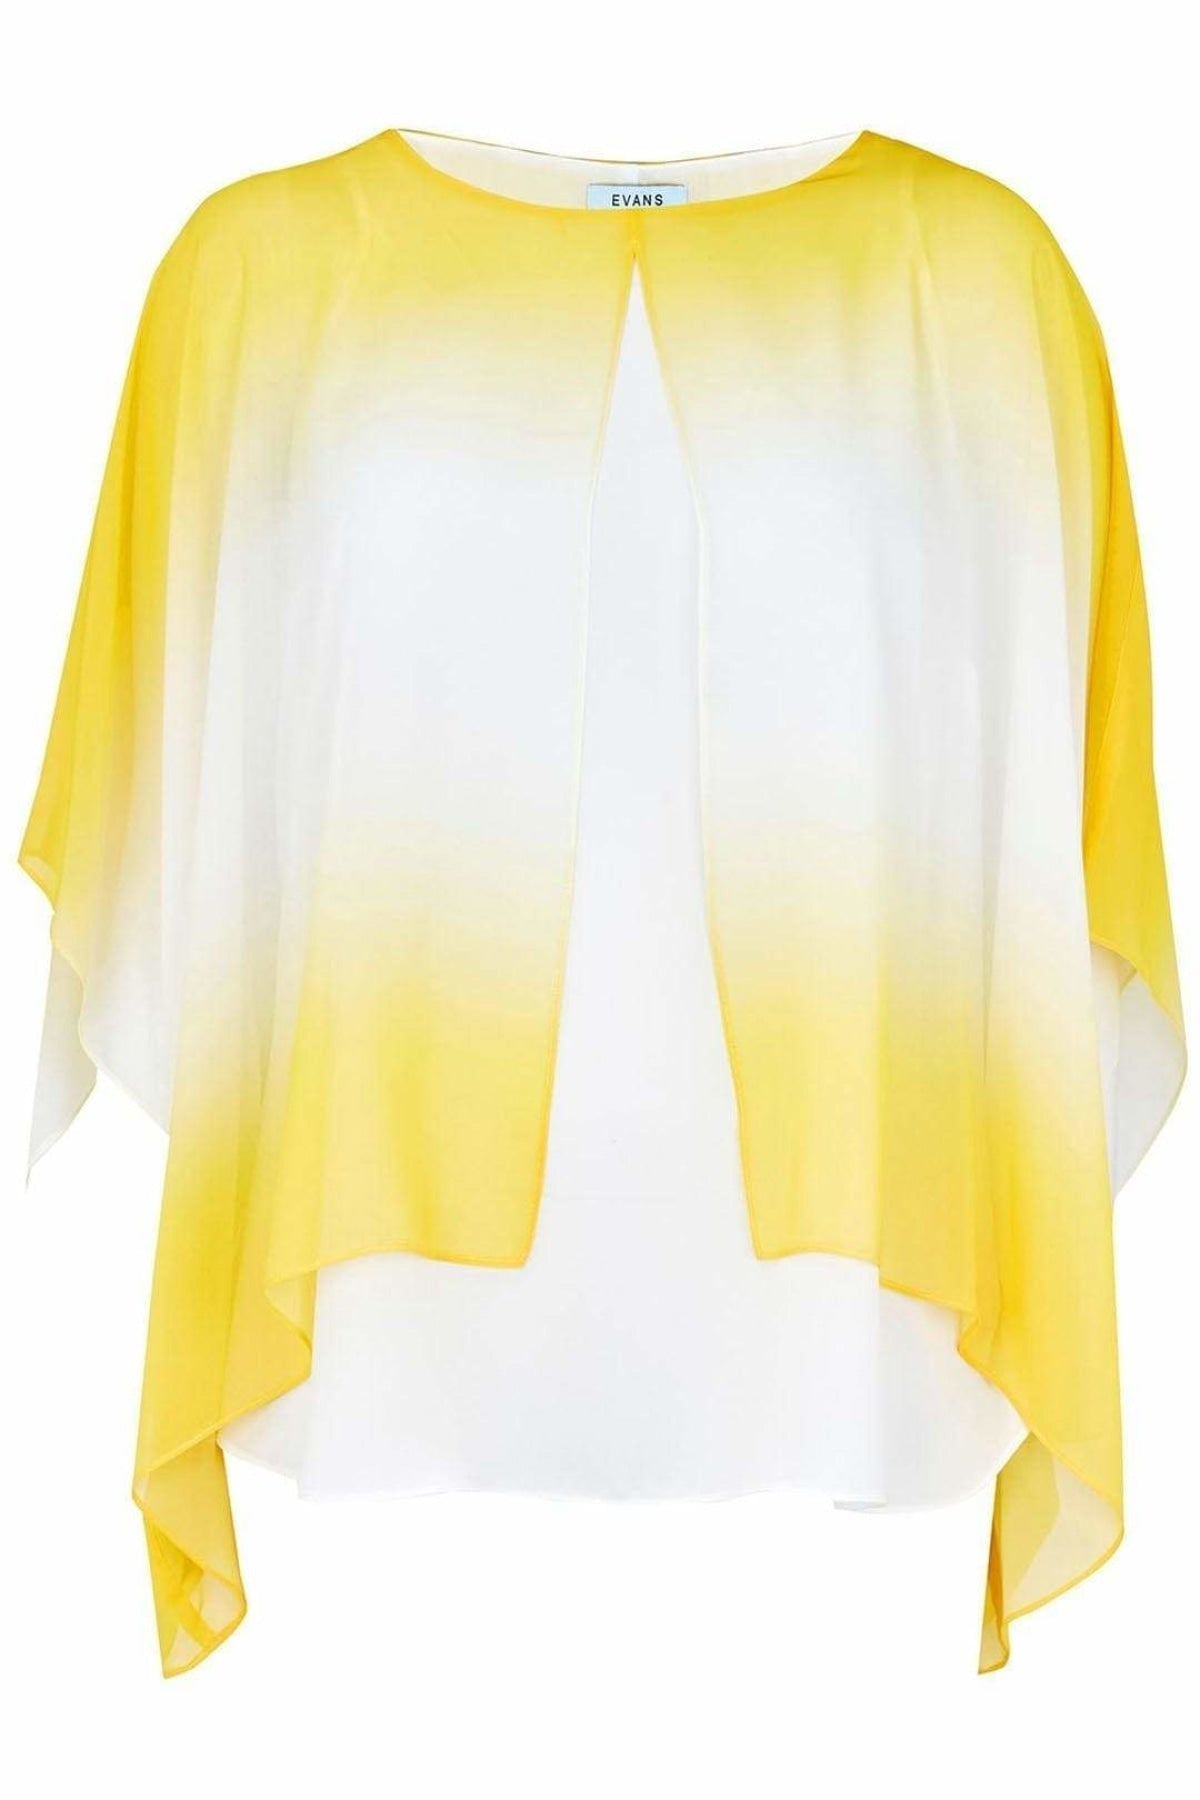 Evans Ex Evans Lemon Chiffon Overlay Ombre Blouse | Secret Label